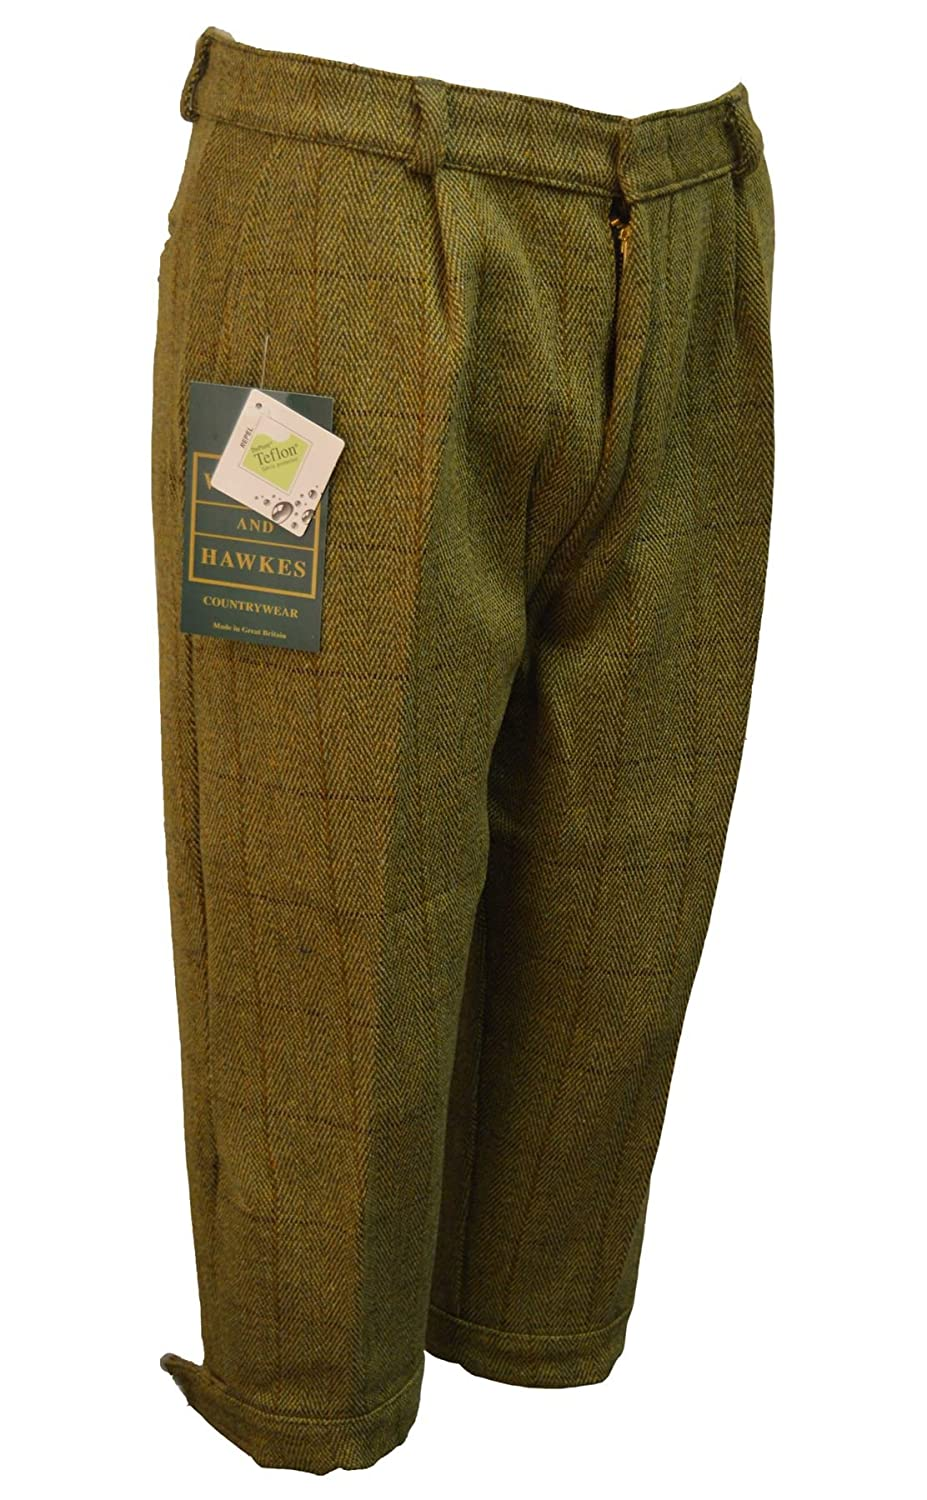 Vintage High Waisted Trousers, Sailor Pants, Jeans Walker & Hawkes - Mens Derby Tweed Shooting Plus Fours LONG Breeks Trousers - Light Sage - 32-42 $76.99 AT vintagedancer.com